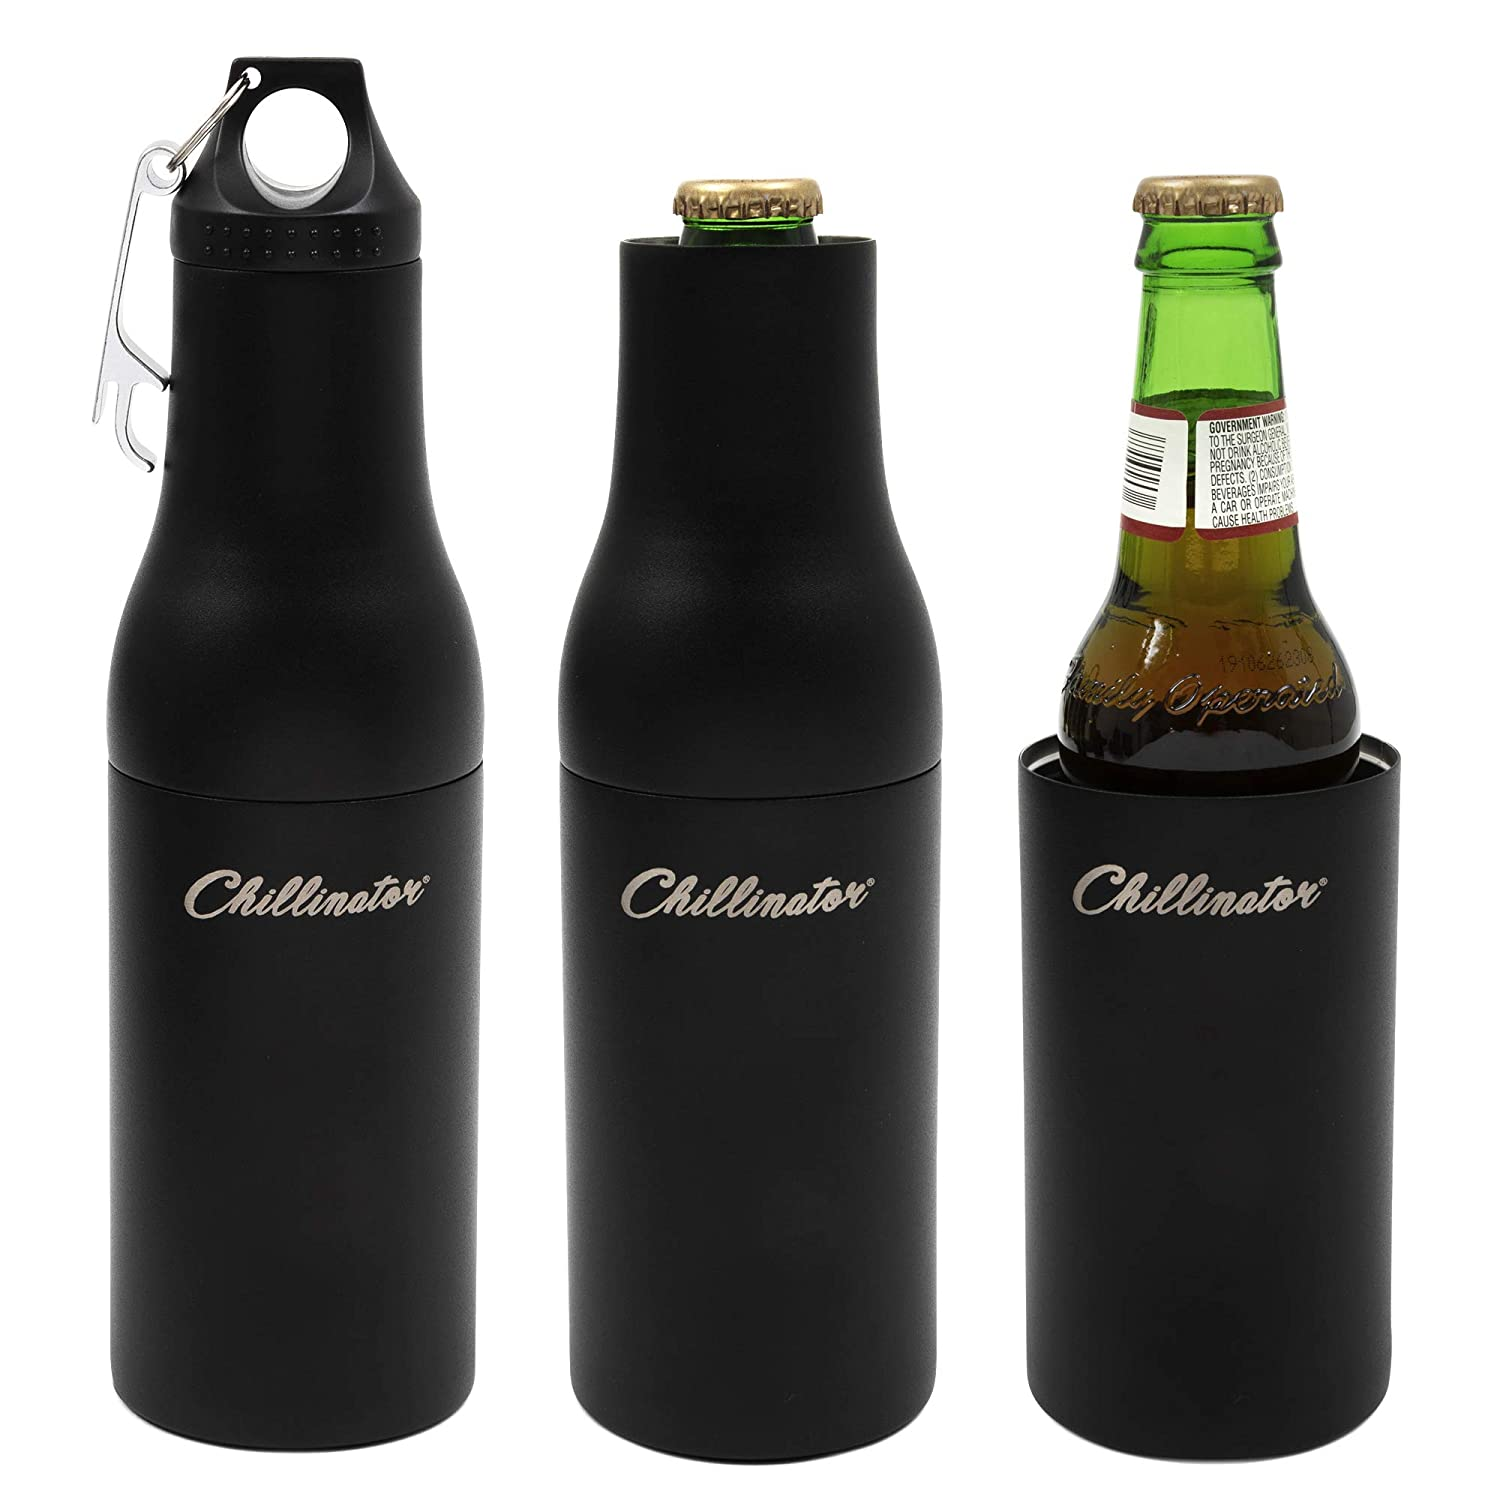 Beer Bottle Insulator Stainless Steel Black Double Wall Coolers with Carry Pouch Coozie for Standard Bottles Sleeve Opener -Drinking Accessories Insulated Holder for Long-Neck Beers